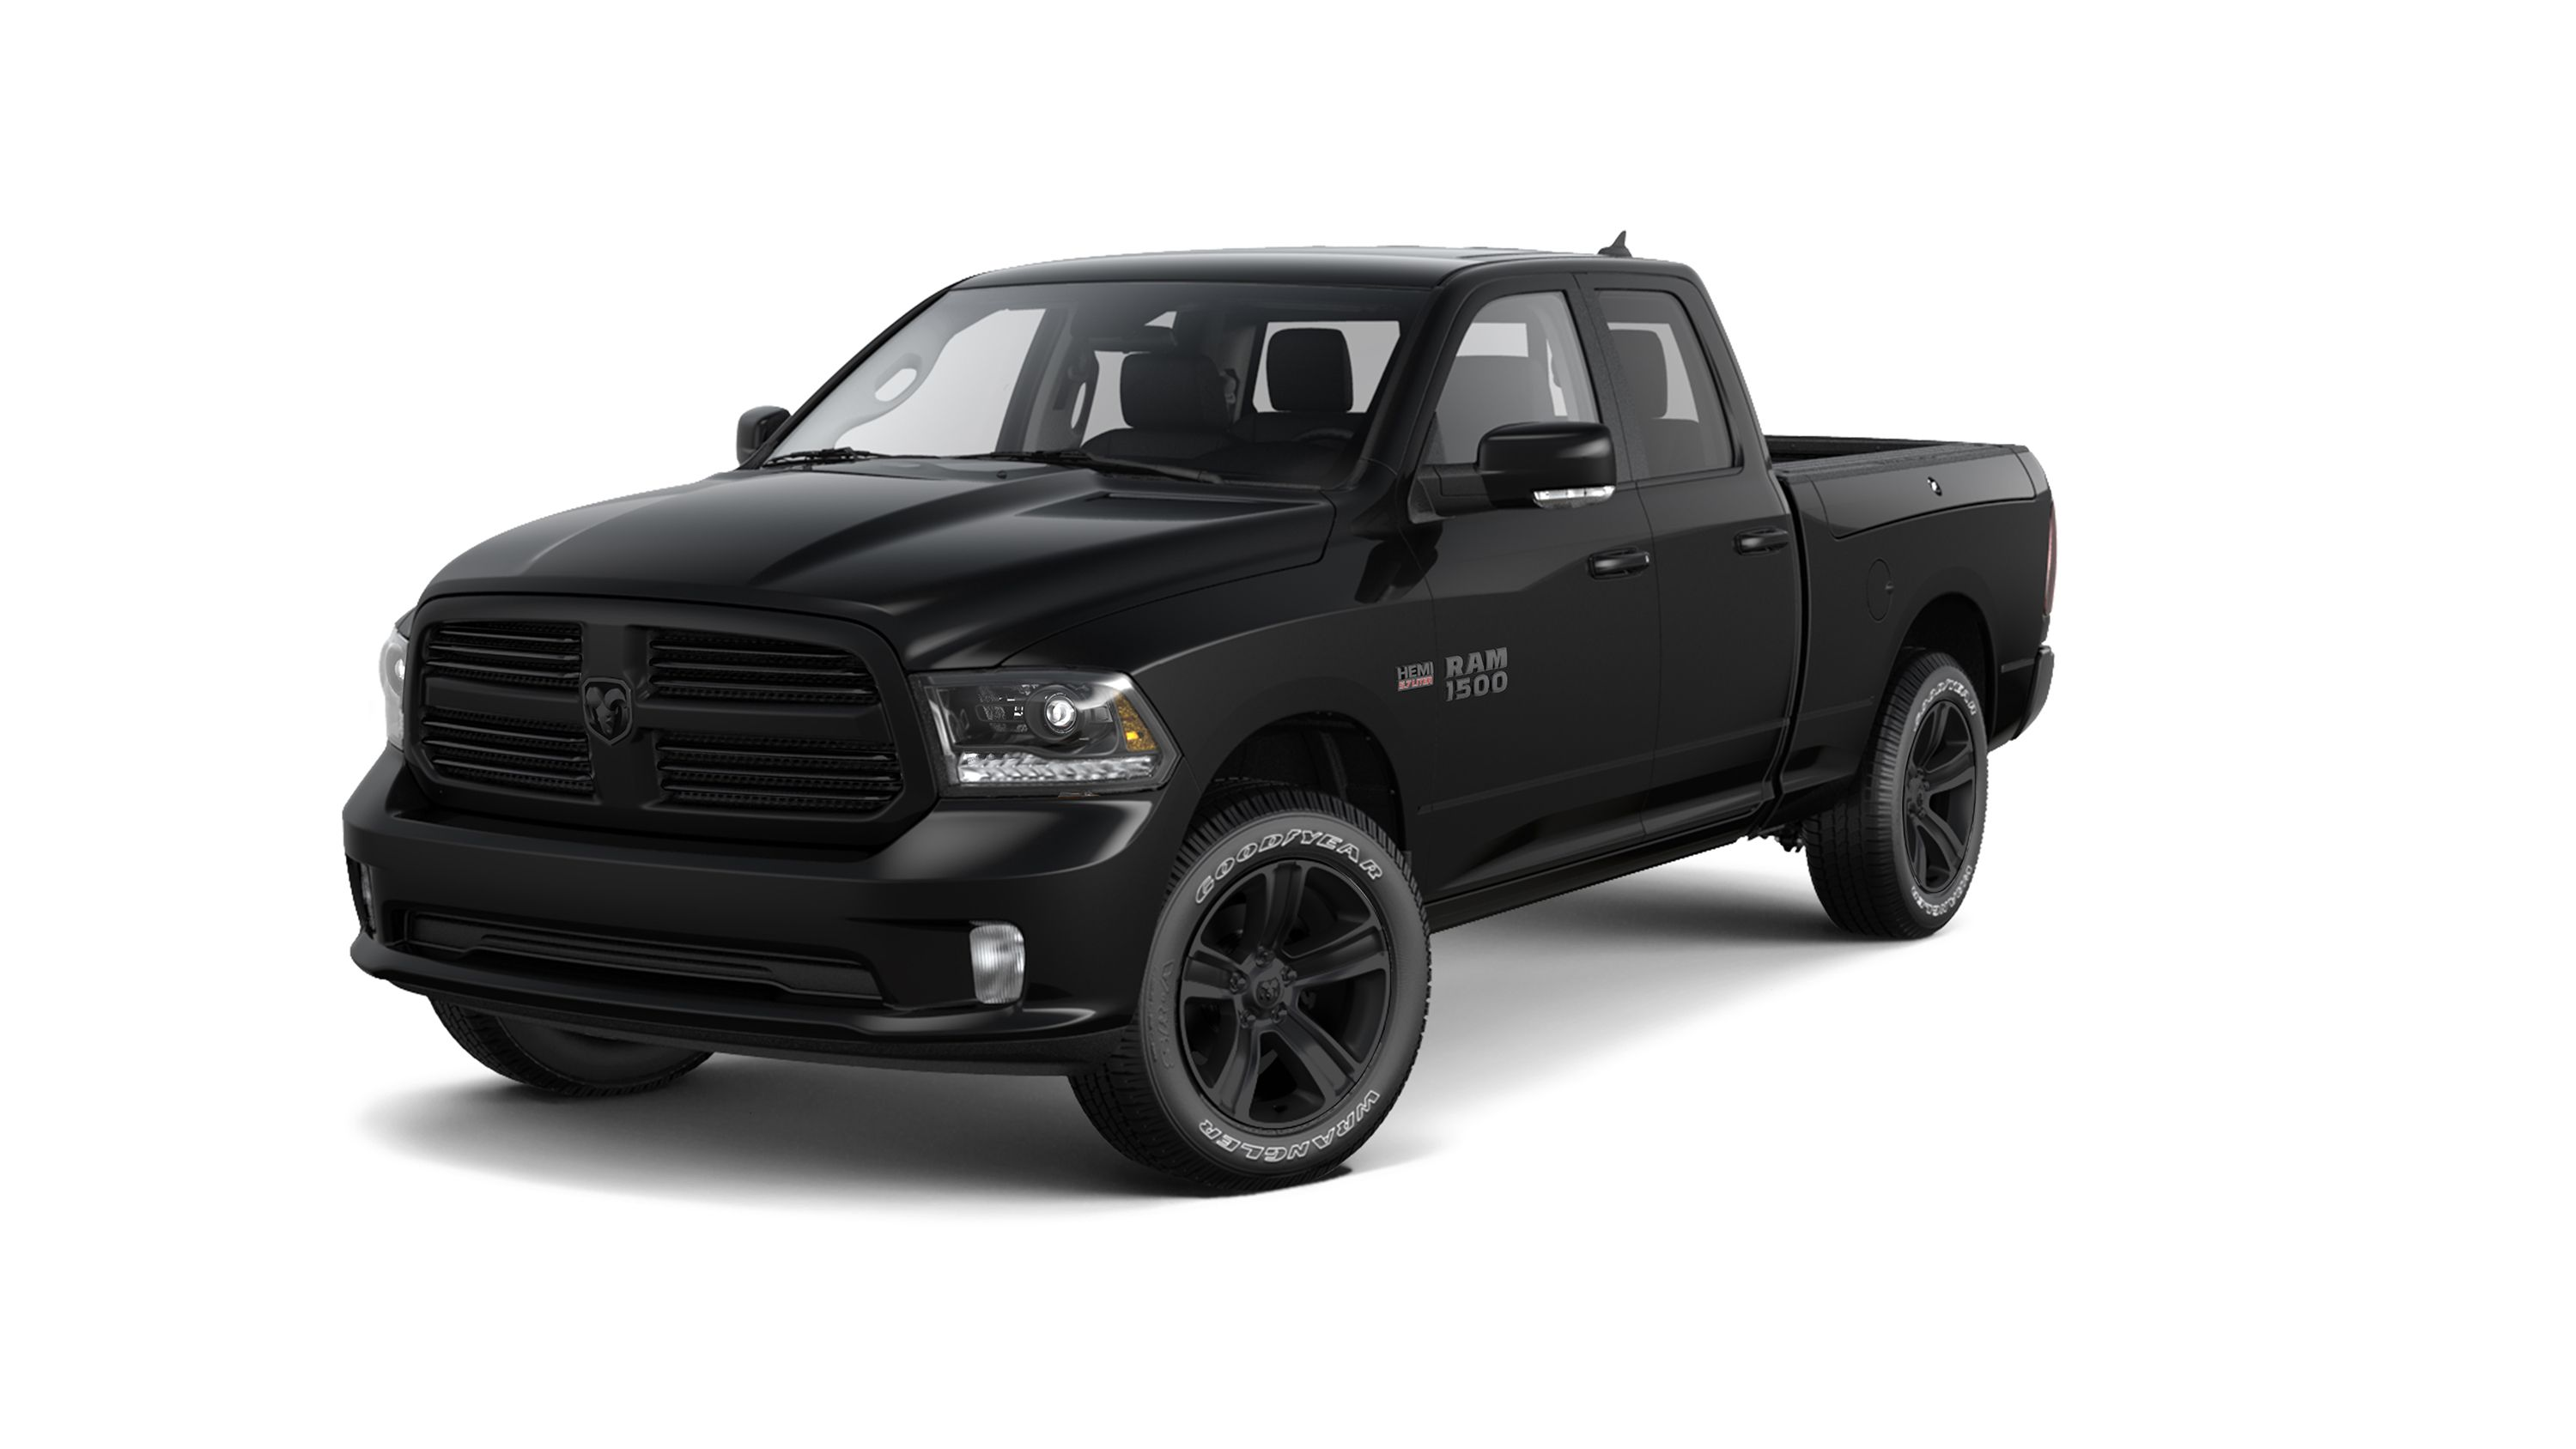 Ram fans have a reason to get excited as two limited edition models the ram 1500 ignition orange sport and the ram 1500 black sport are slated to be